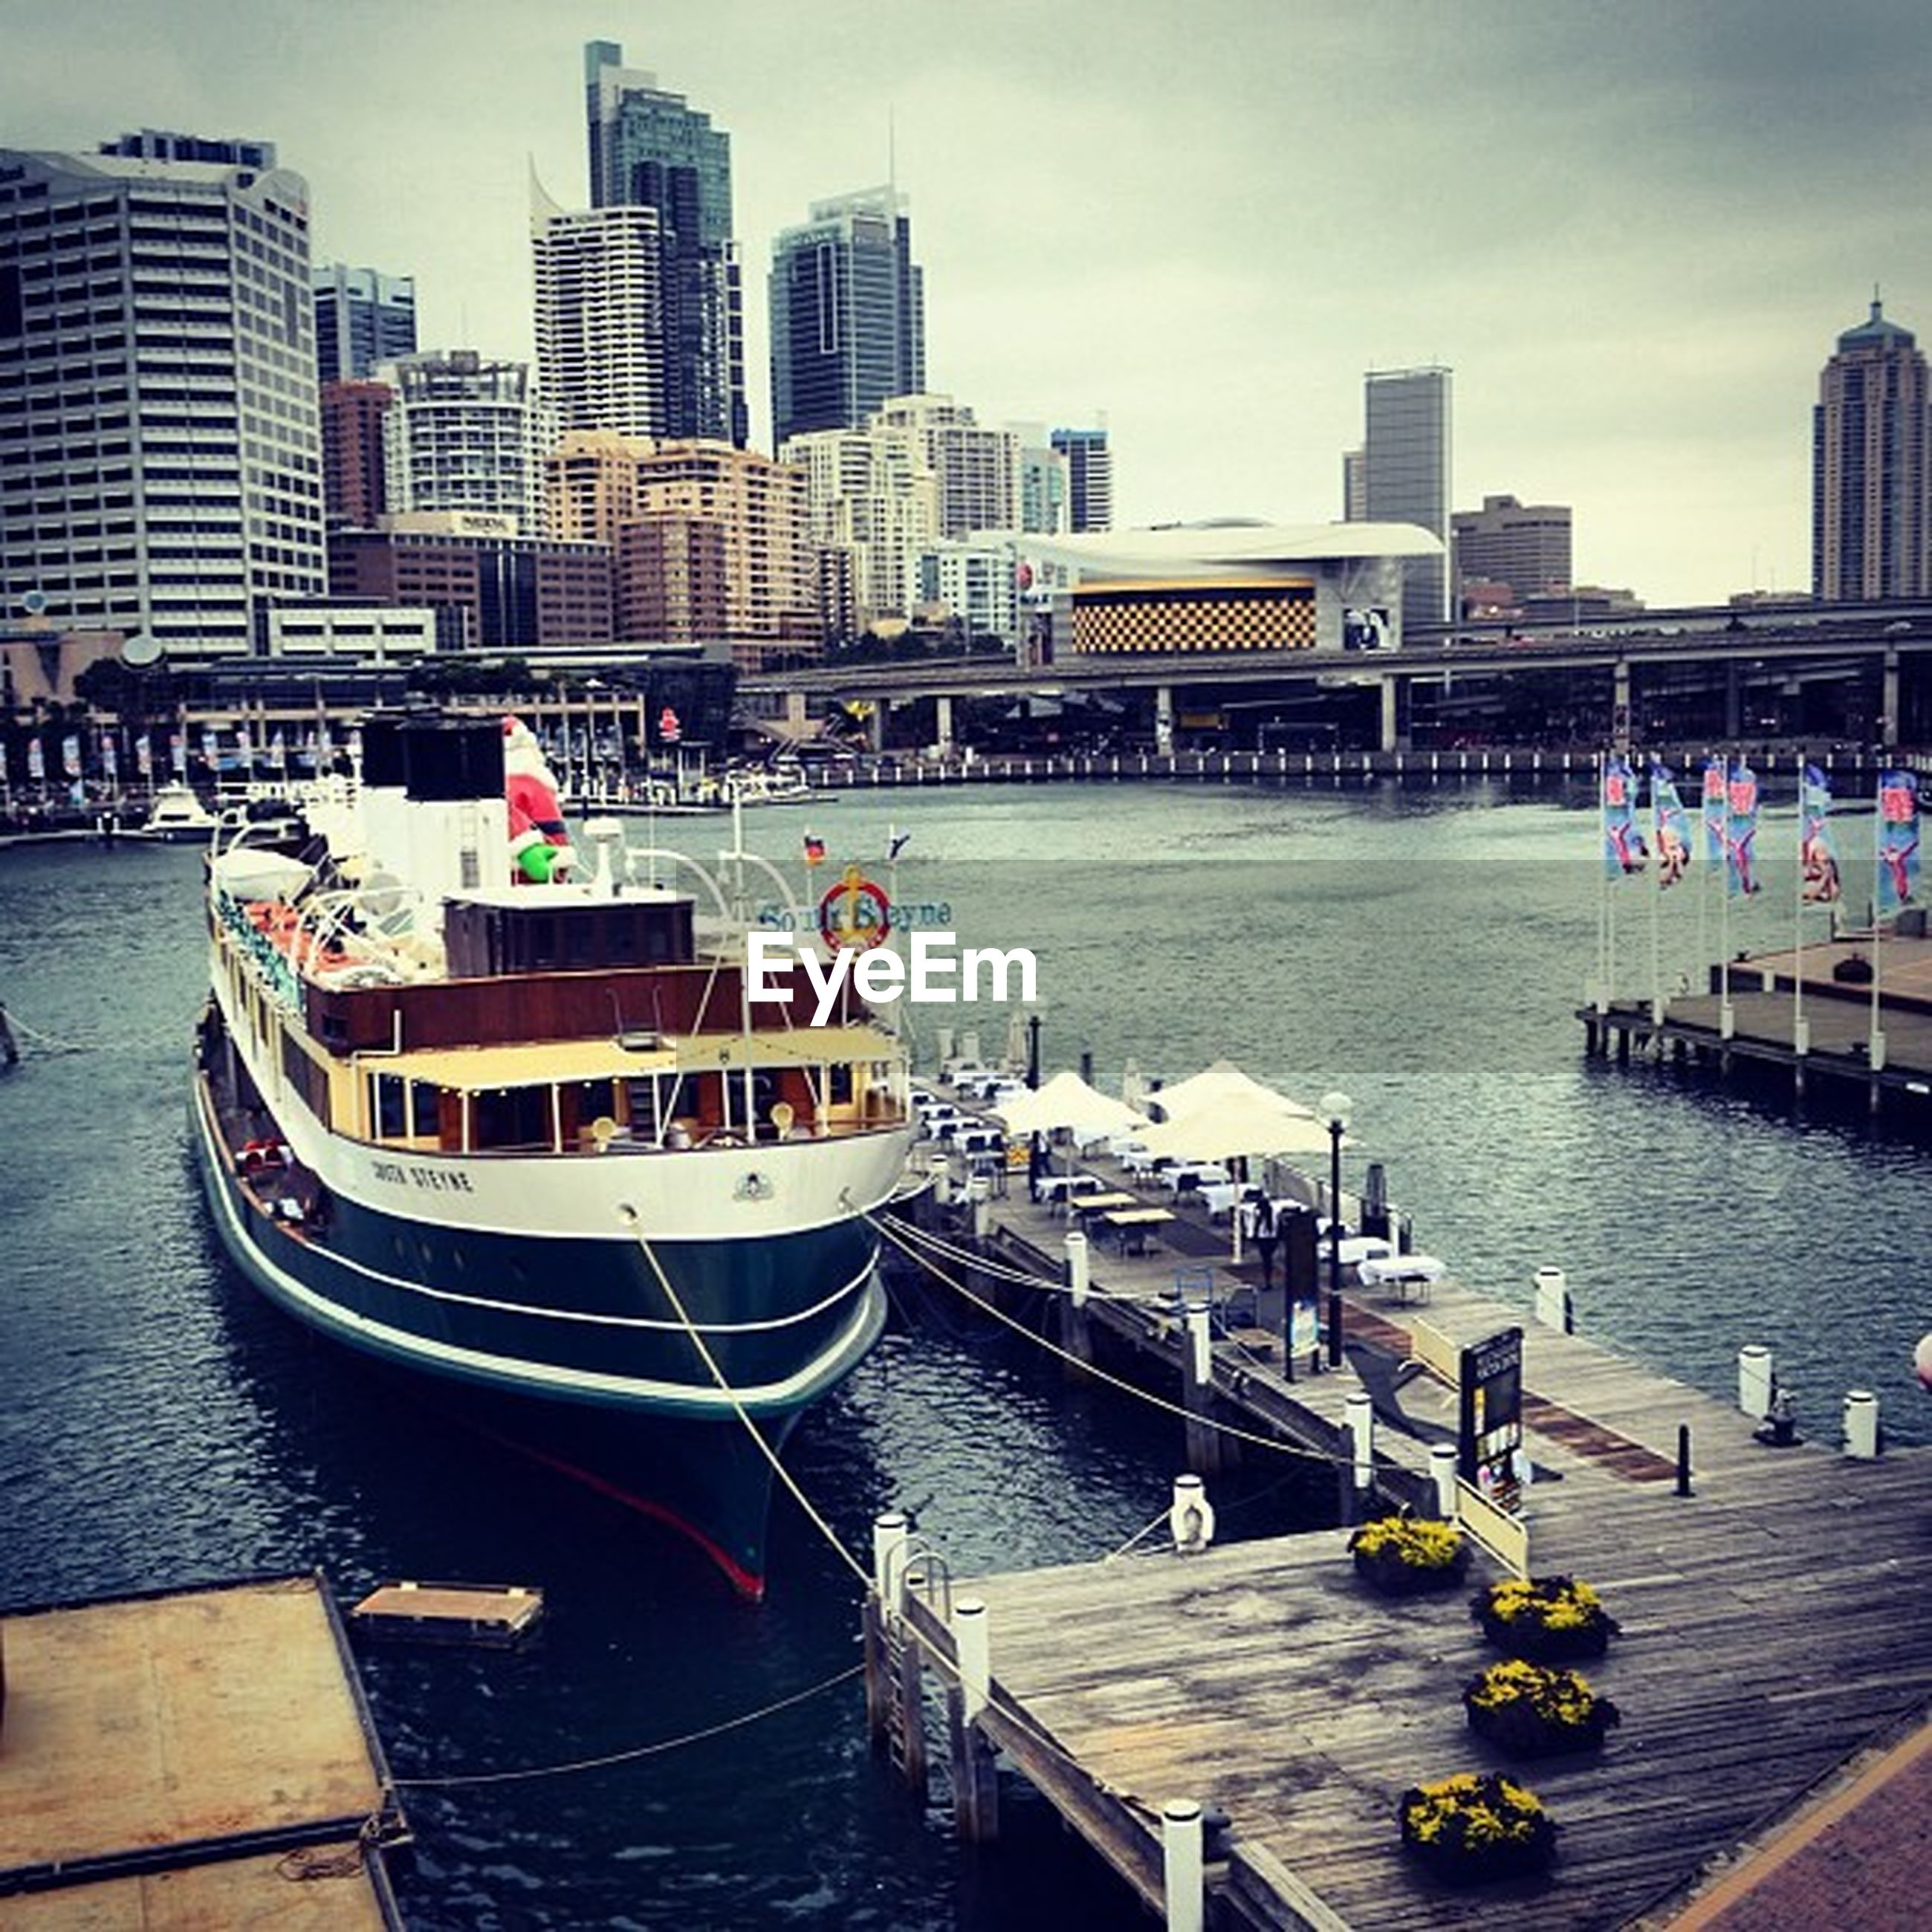 building exterior, nautical vessel, architecture, built structure, water, transportation, city, boat, mode of transport, moored, river, harbor, city life, waterfront, cityscape, sky, incidental people, sea, travel, day